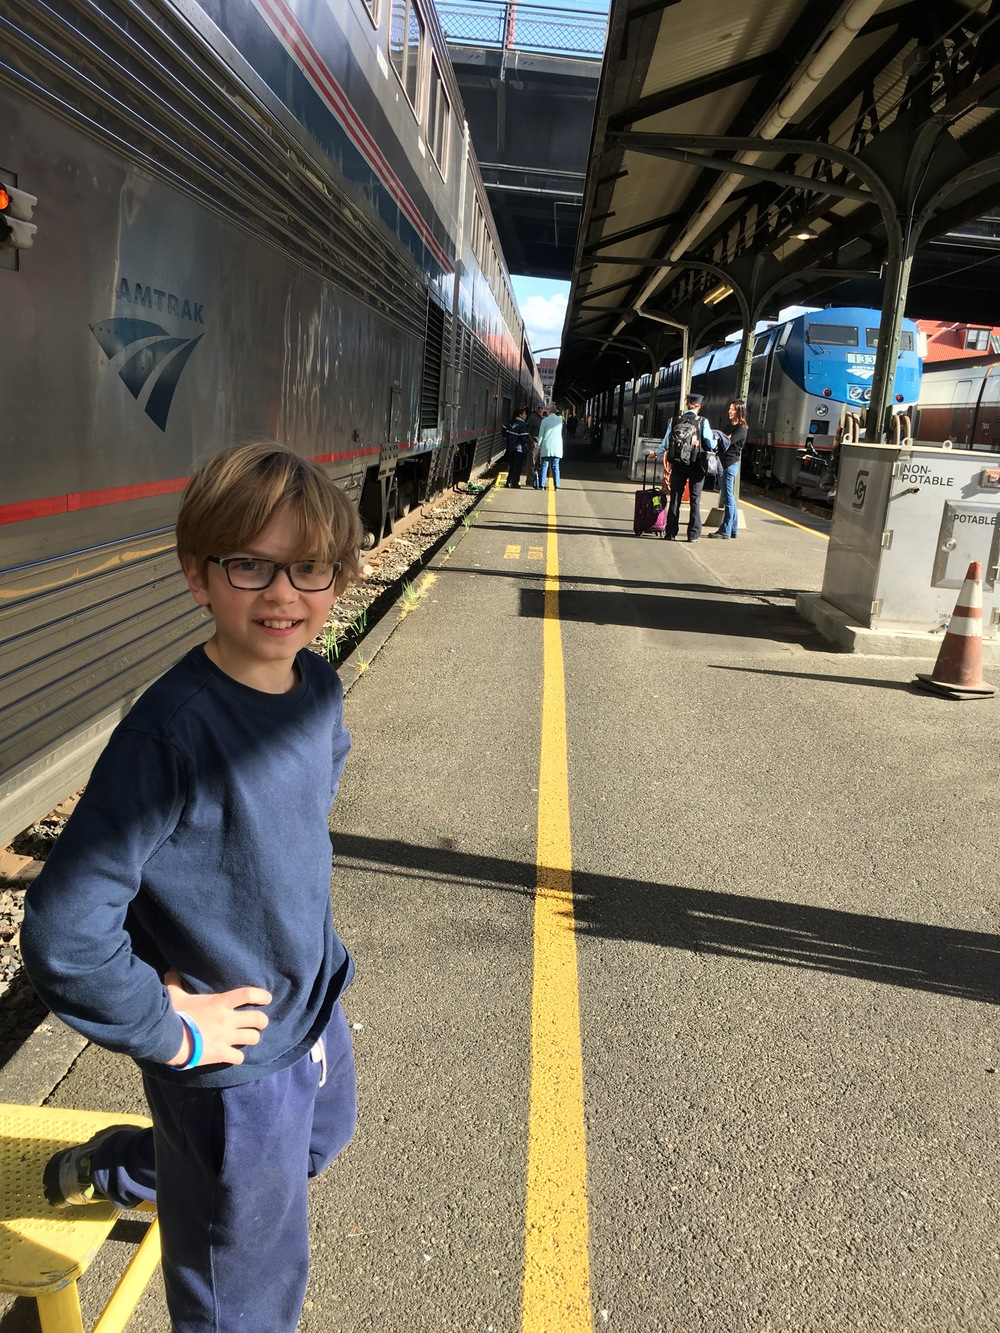 Stretching our legs at the Portland Amtrak station.